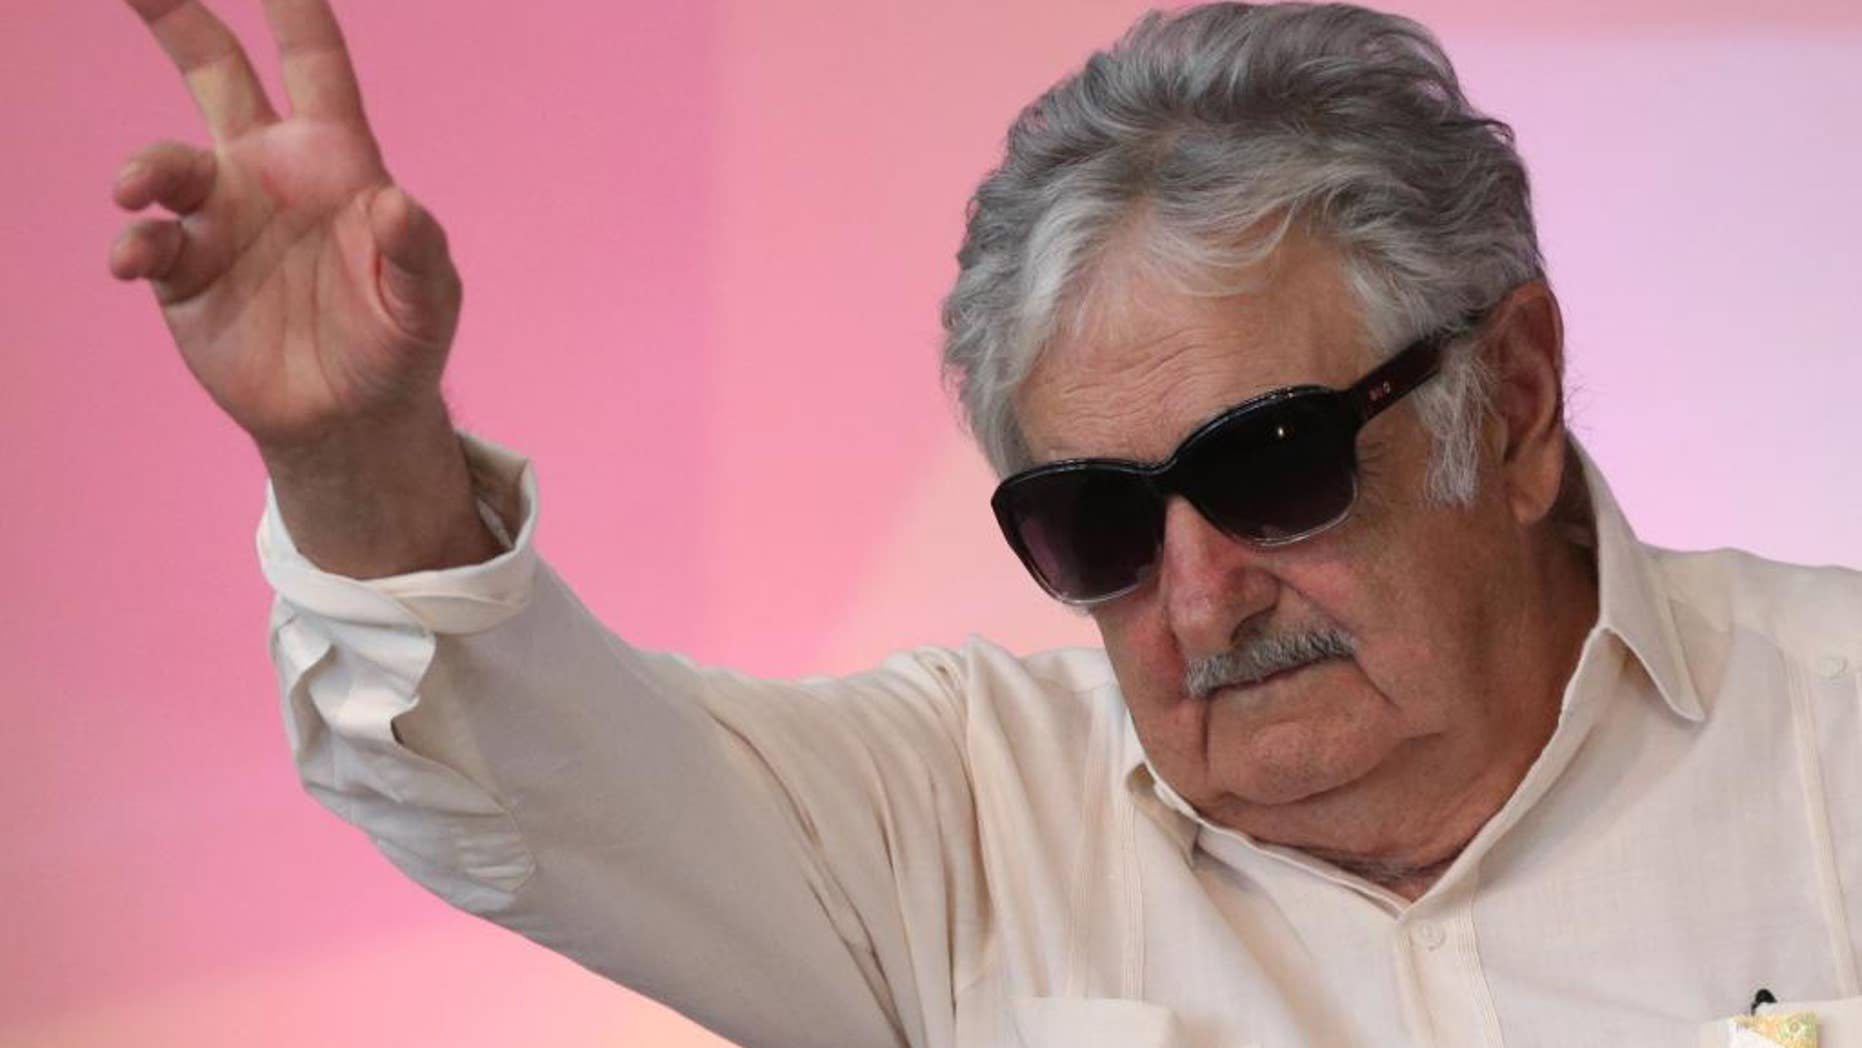 "FILE - In this Dec. 16, 2015 file photo, Uruguay's former President Jose Mujica waves to the crowd during the opening of the National Youth Conference, in Brasilia, Brazil. Mujica says Venezuelan President Nicolas Maduro is ""crazy as a goat,"" while speaking Wednesday, May 18, 2016, at a press conference where he was asked about an escalating row between Maduro and the head of the Organization of American States. (AP Photo/Eraldo Peres, File)"